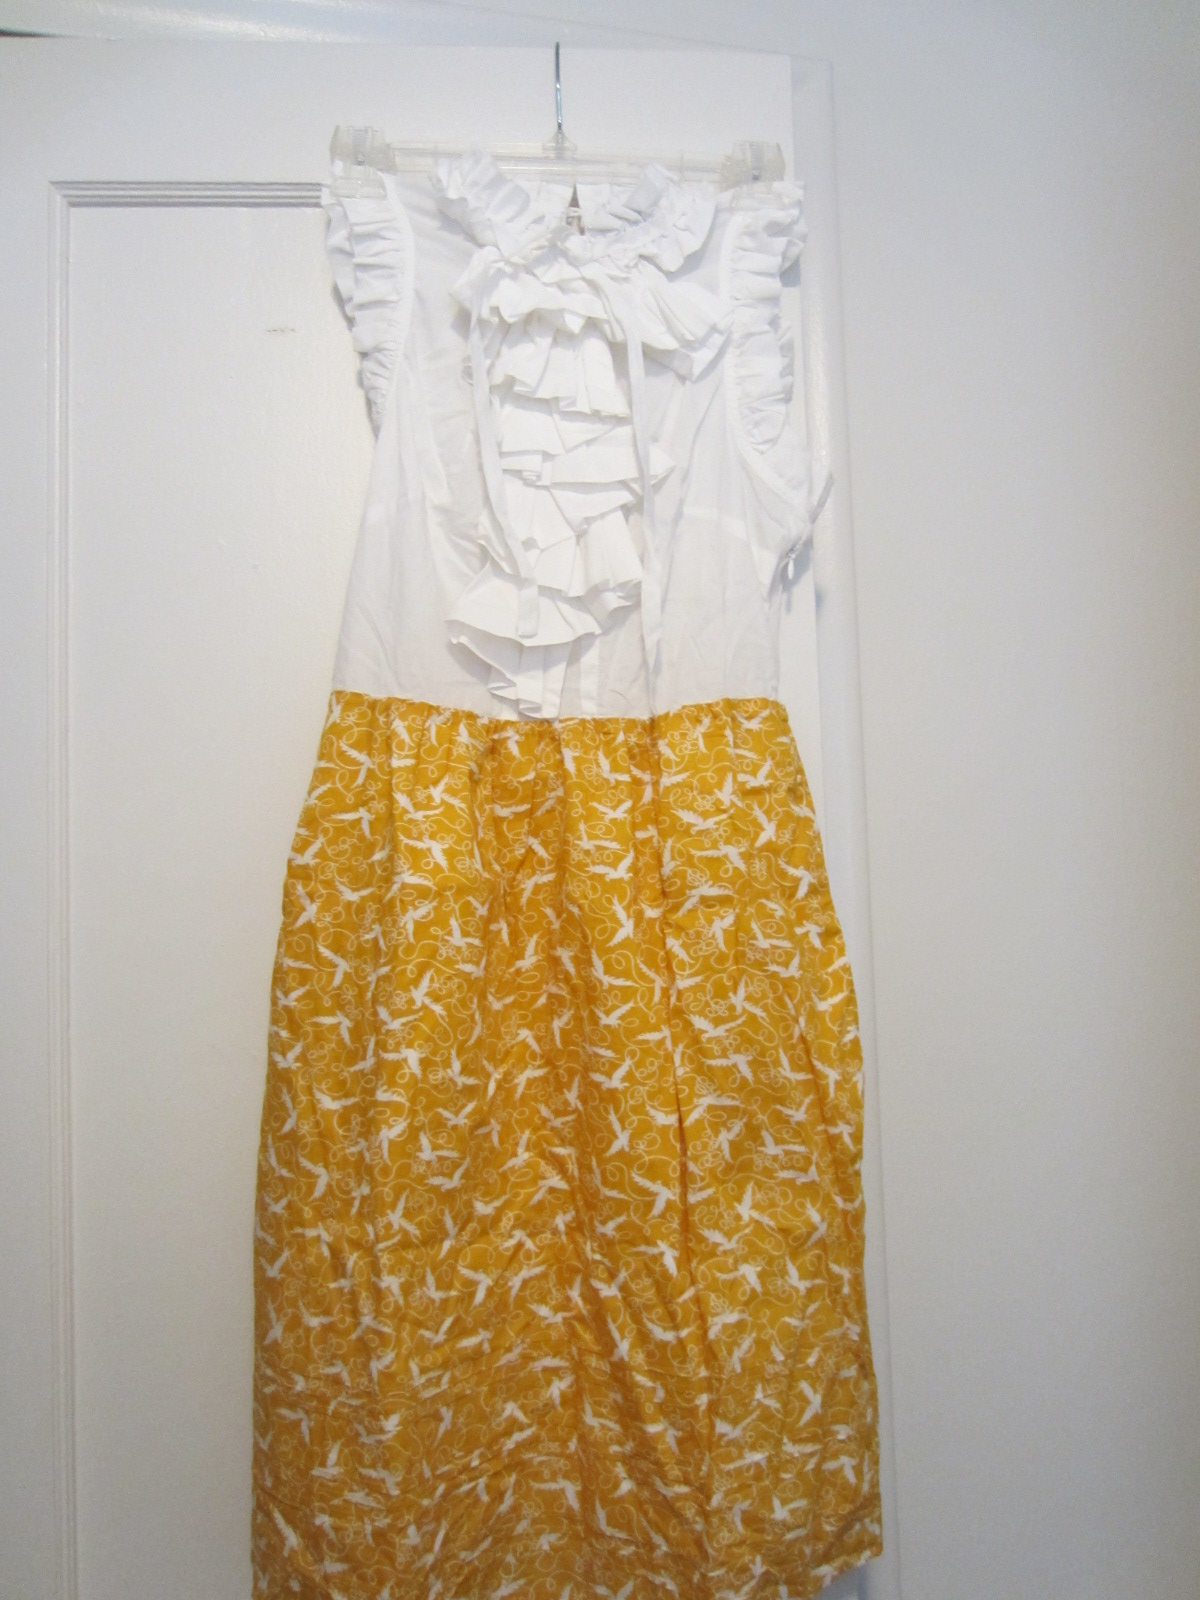 3b477bcf60c6 Anthro Galore Closet Sale: NWOT Anthropologie Sunny Soiree dress ...